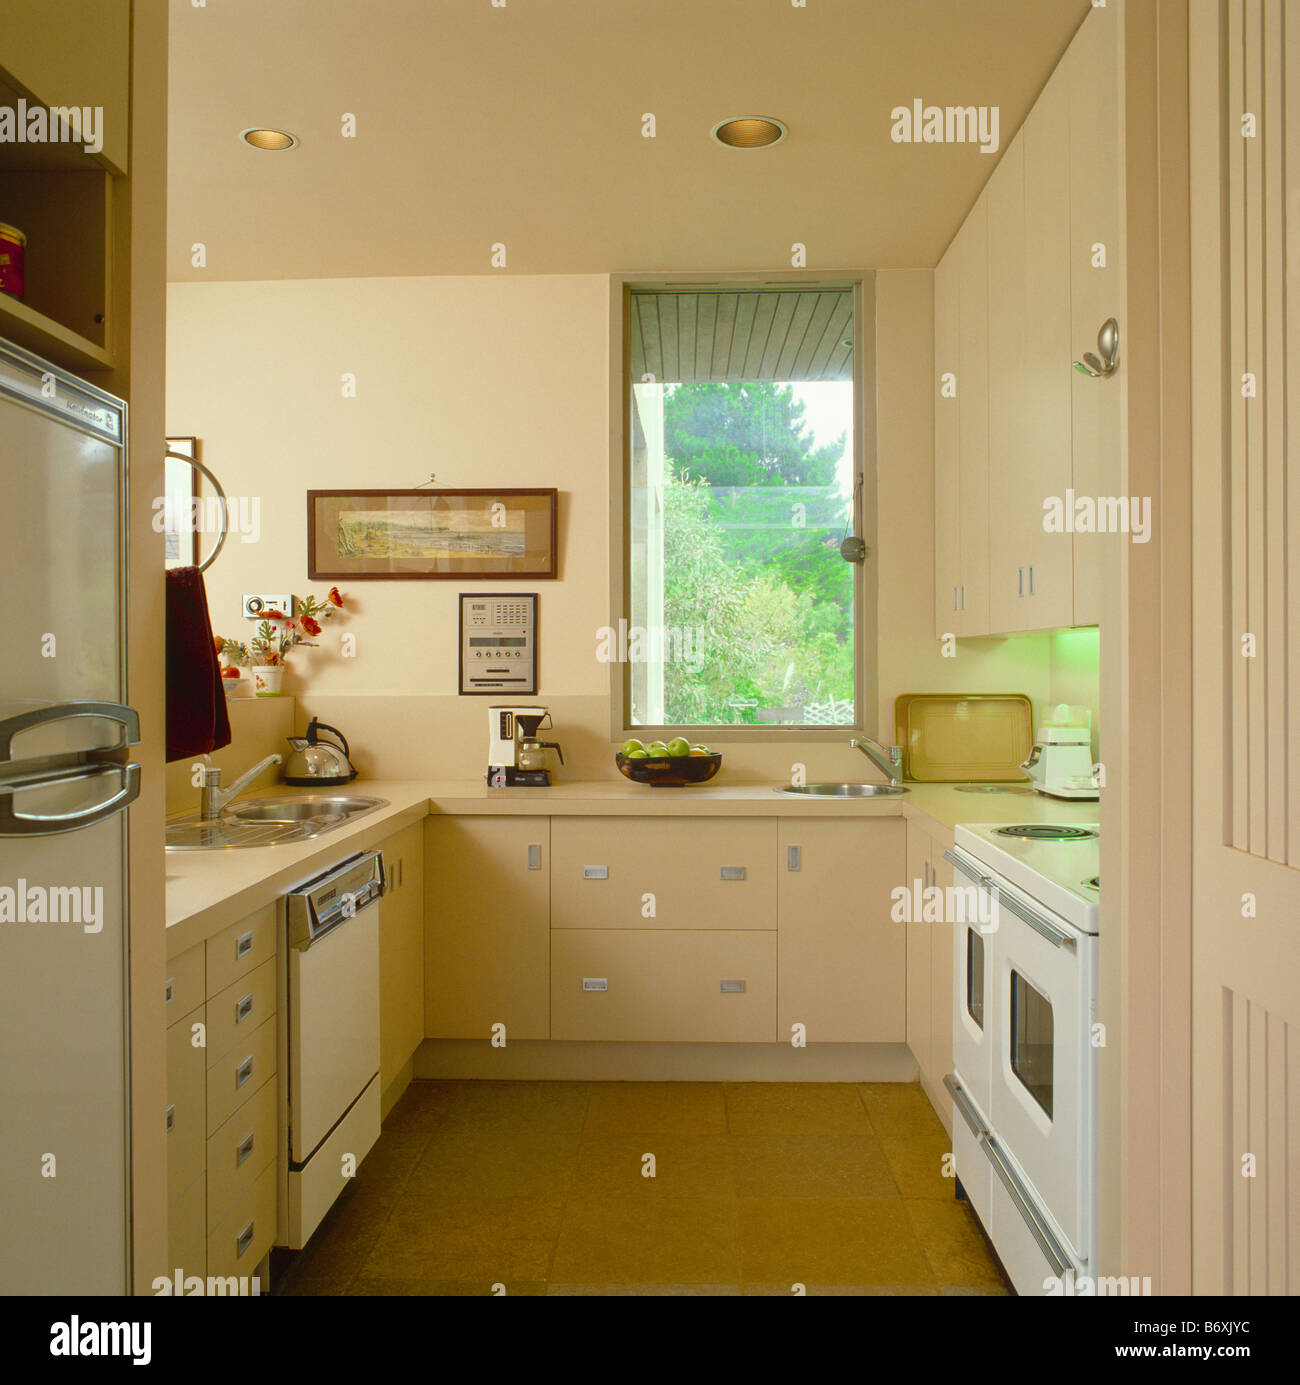 Country Interiors Kitchens Modern Stock Photos & Country